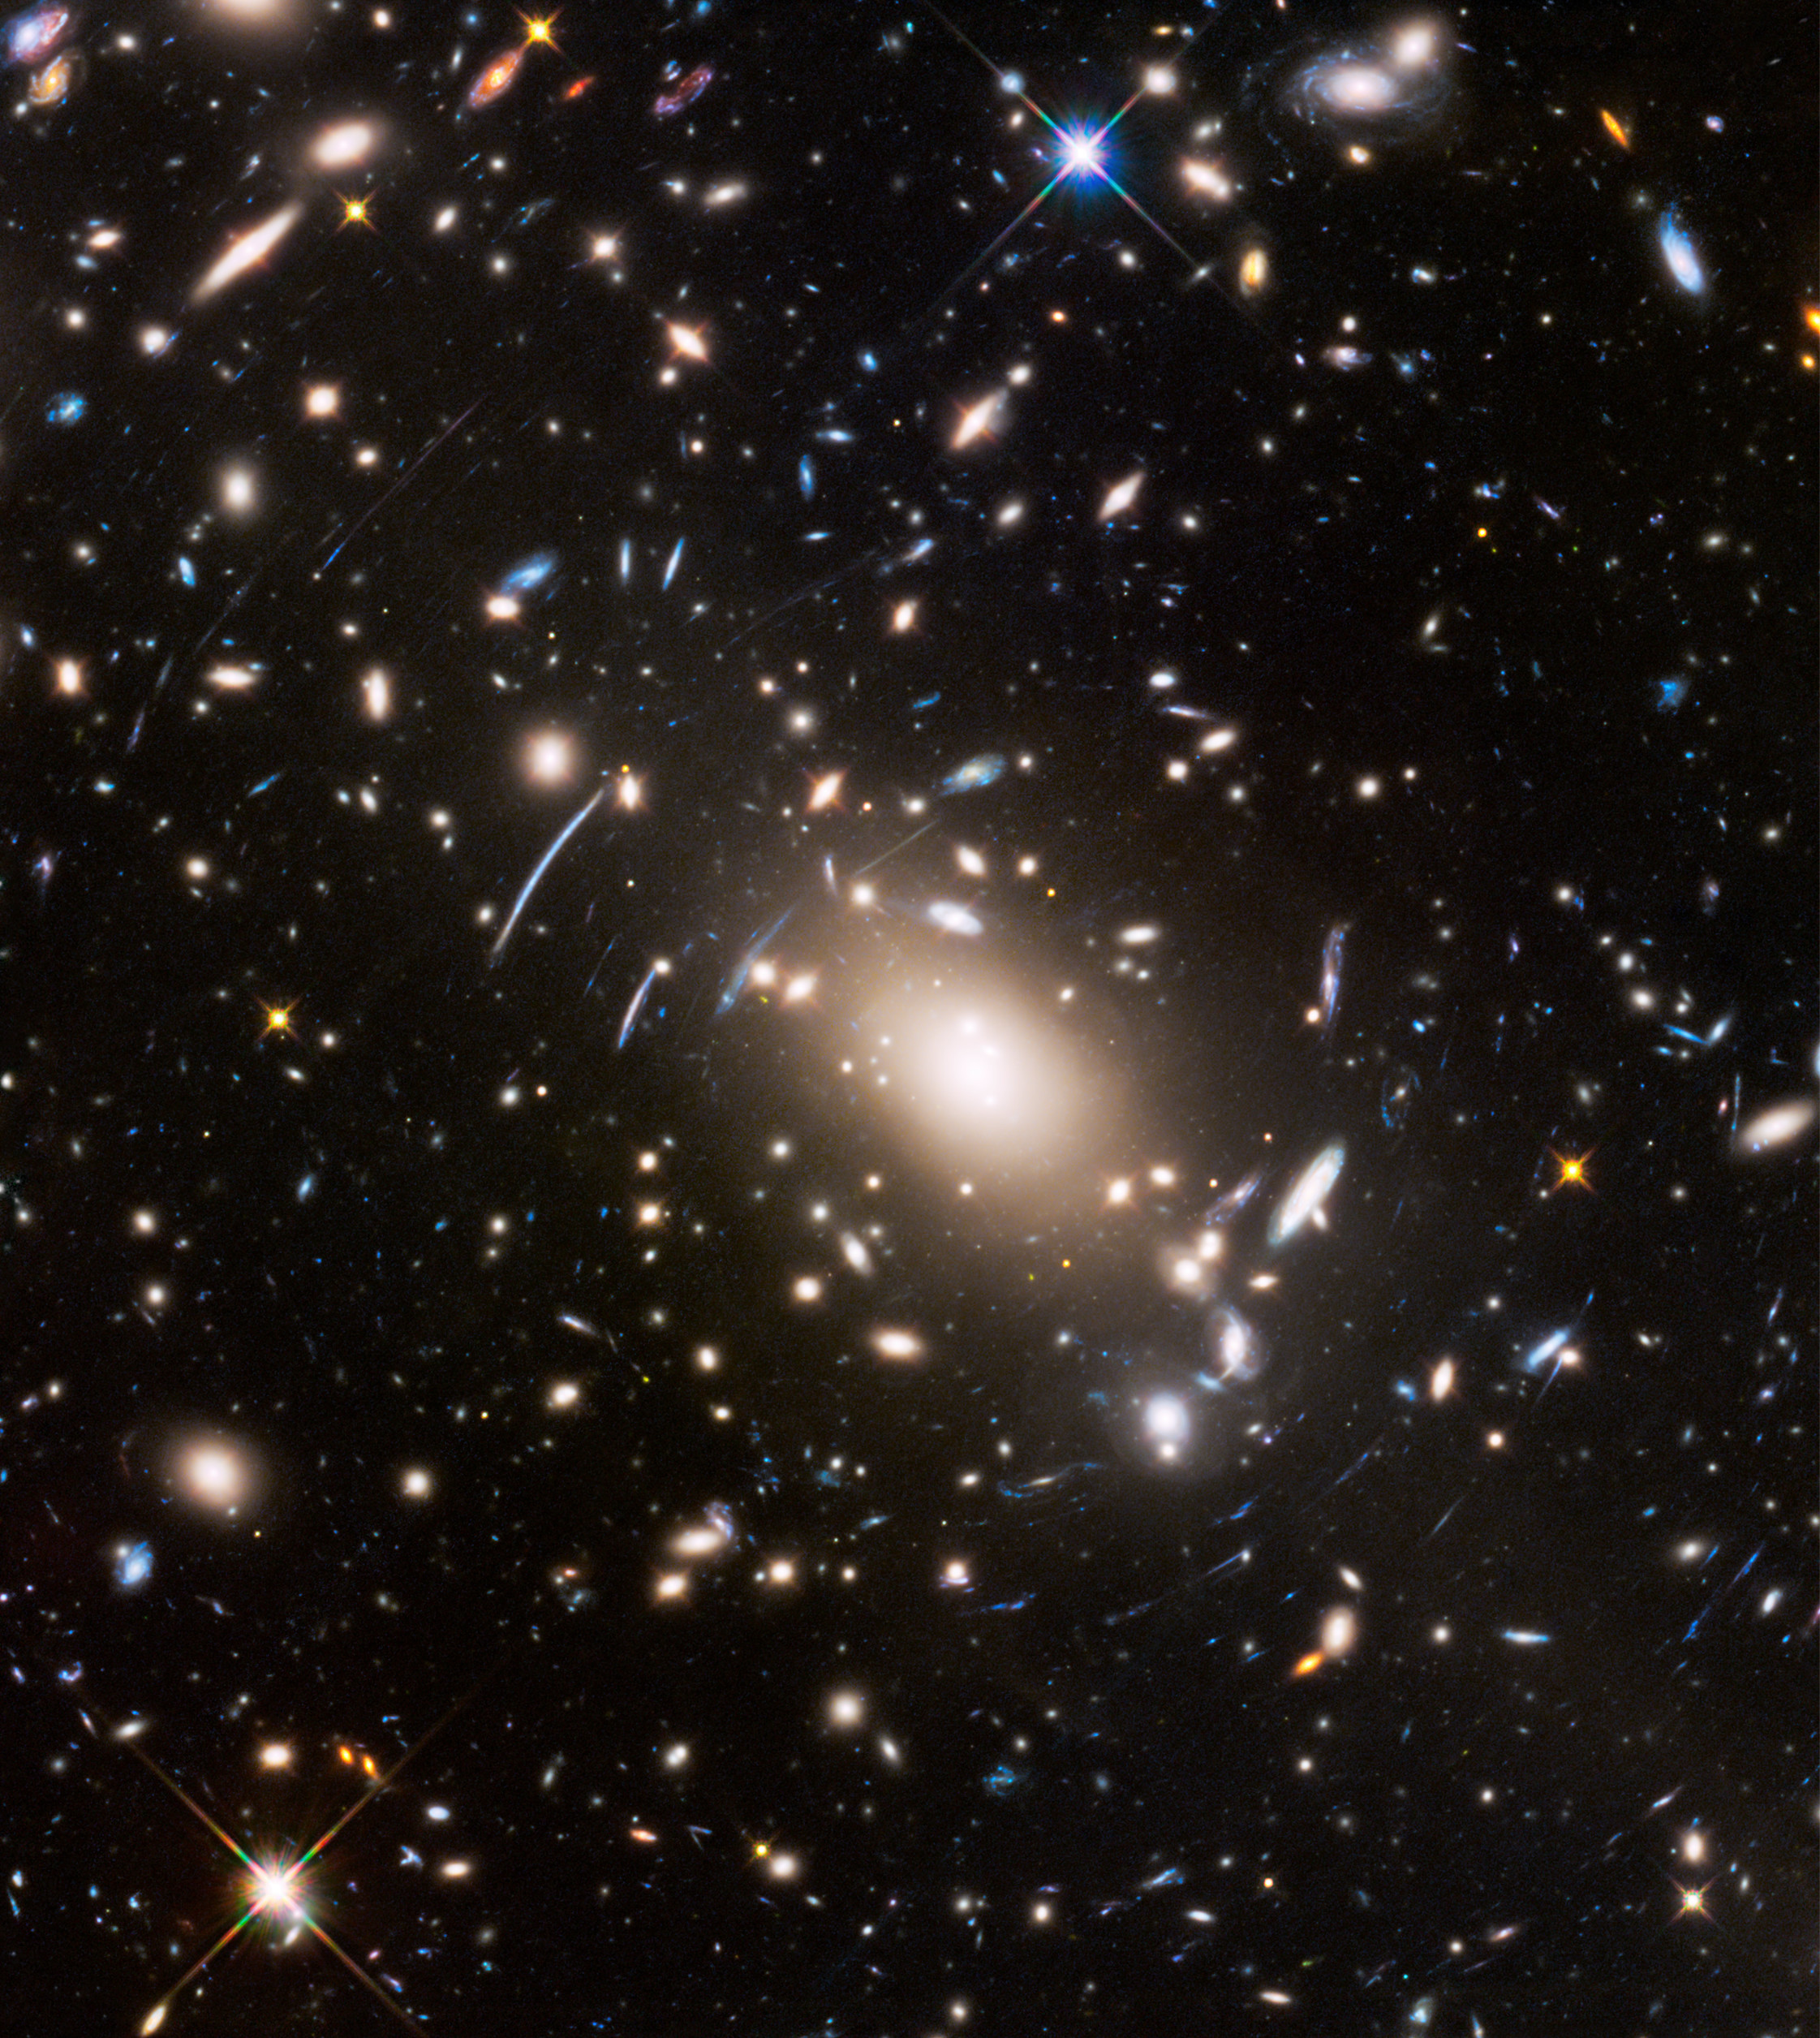 Move Over, 'Star Trek' — Hubble Telescope Sees the Real Final Frontier